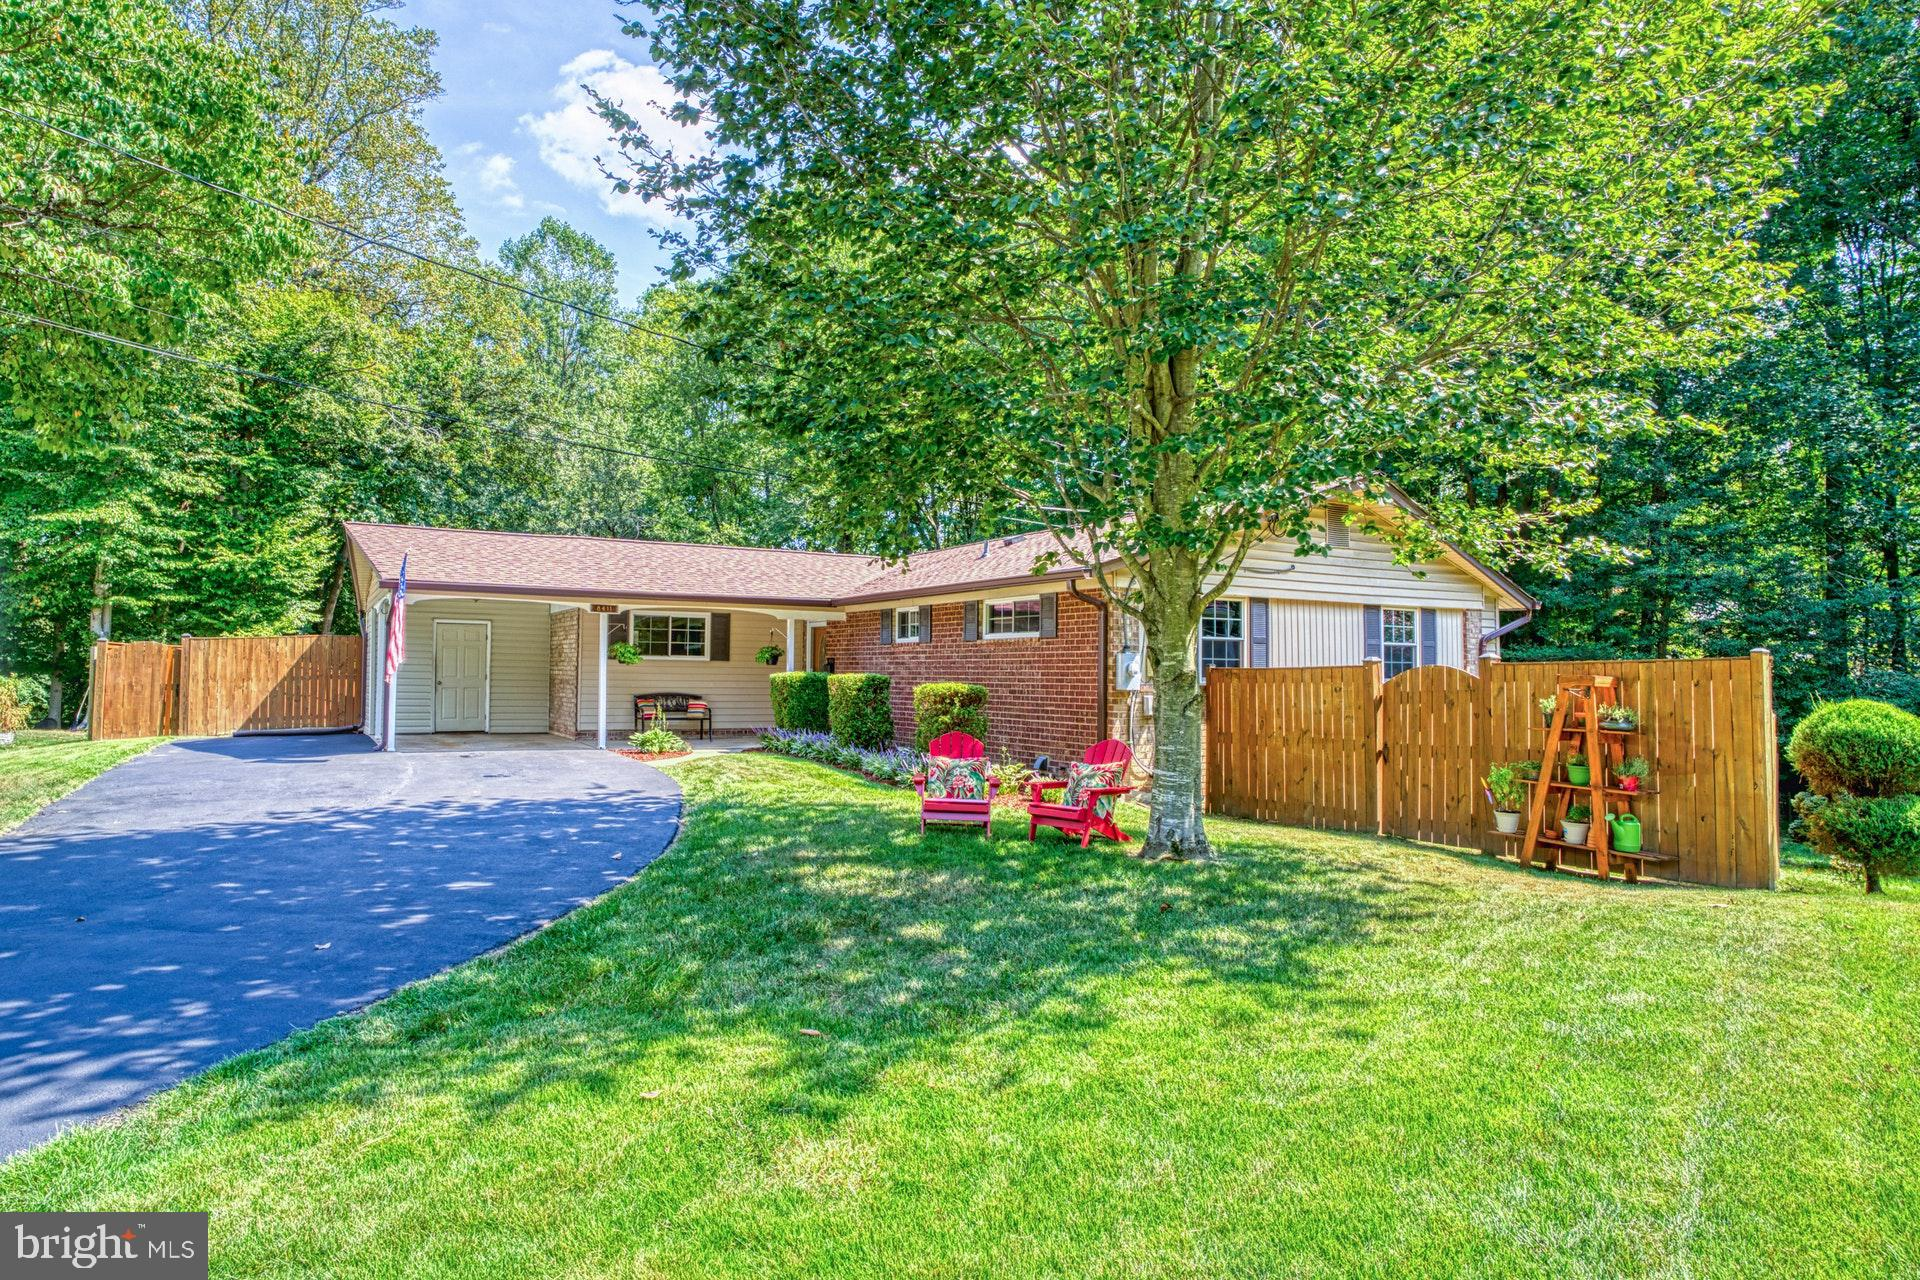 Amazing home on One Third Acre, Cul-De-Sac Lot. Lovingly maintained and exquisitely updated by Current Owners; their pending employment transfer is purchaser~s gain. Over $50,000 in Recent upgrades. Hardwood and Ceramic Tile Floors throughout. Chef's Kitchen features Stainless Steel Appliances, 42-Inch Maple Cabinets, 5-Burner Gas Range, Granite Counter-tops and Cozy Breakfast Nook. Wall of Windows in Living Room, Bay Window in Dining Room. Fresh paint throughout home. Remodeled Baths feature Updated Fixtures, Ceramic Tile Floors and Backsplash. Lower Level includes Expansive Family Room and Wet Bar with Granite Counter-tops, Sink and Mini Fridge. New Roof, Deck, Fence, Gutters, Security System and more. Newer Windows (except Bay) and extensive lighting fixtures. Fenced Rear Yard is an Entertainment Mecca that also includes rear Patio. To die for Rear Yard Surveys Acres of Parkland.  See Documents for Extensive List of Improvements and additional Special Features. Minutes to VRE, Metro Bus Stop and Beltway. Convenient to the Pentagon via Direct Metro Bus and Washington DC. Magnificent Lake Braddock Secondary School Pyramid. Experience the Convenience of Exquisite Main Level Living with the added bonus of a beautifully appointed Lower Level. Hurry! Won't last!